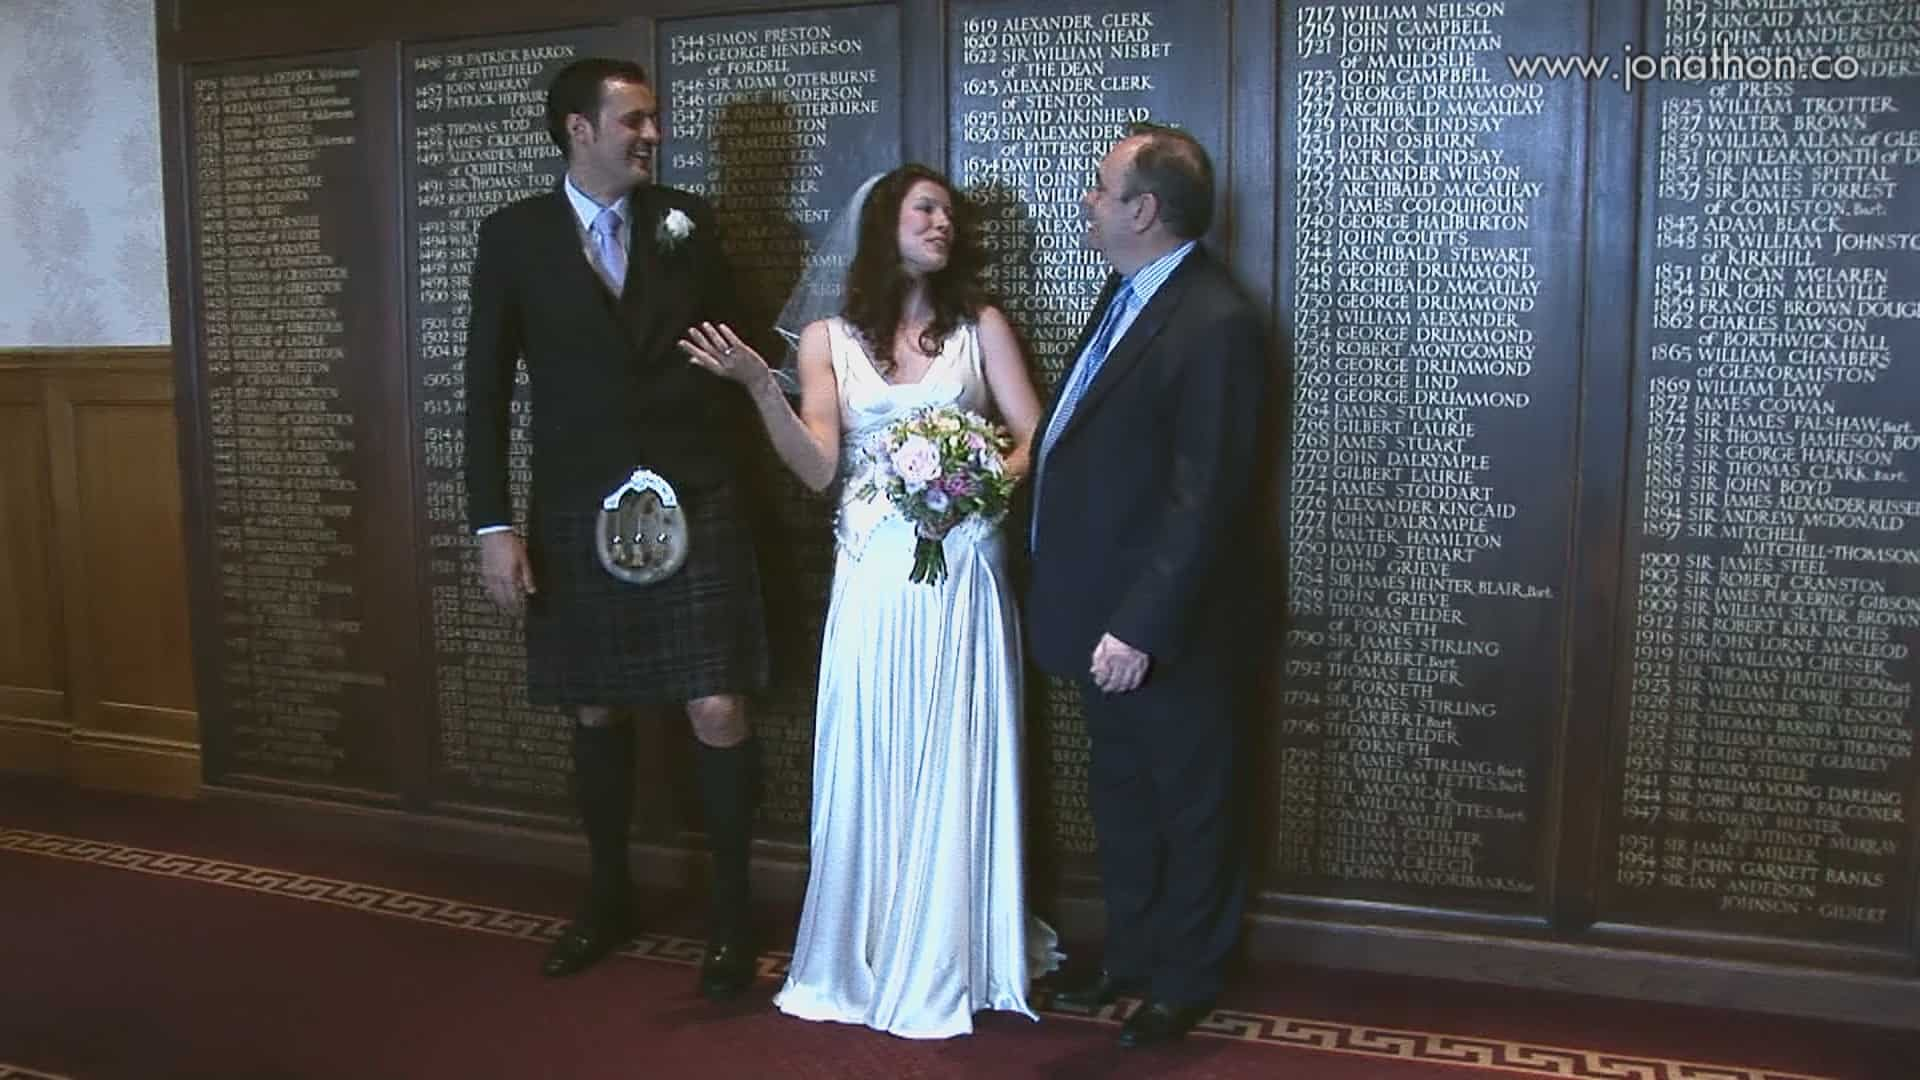 Edinburgh wedding video